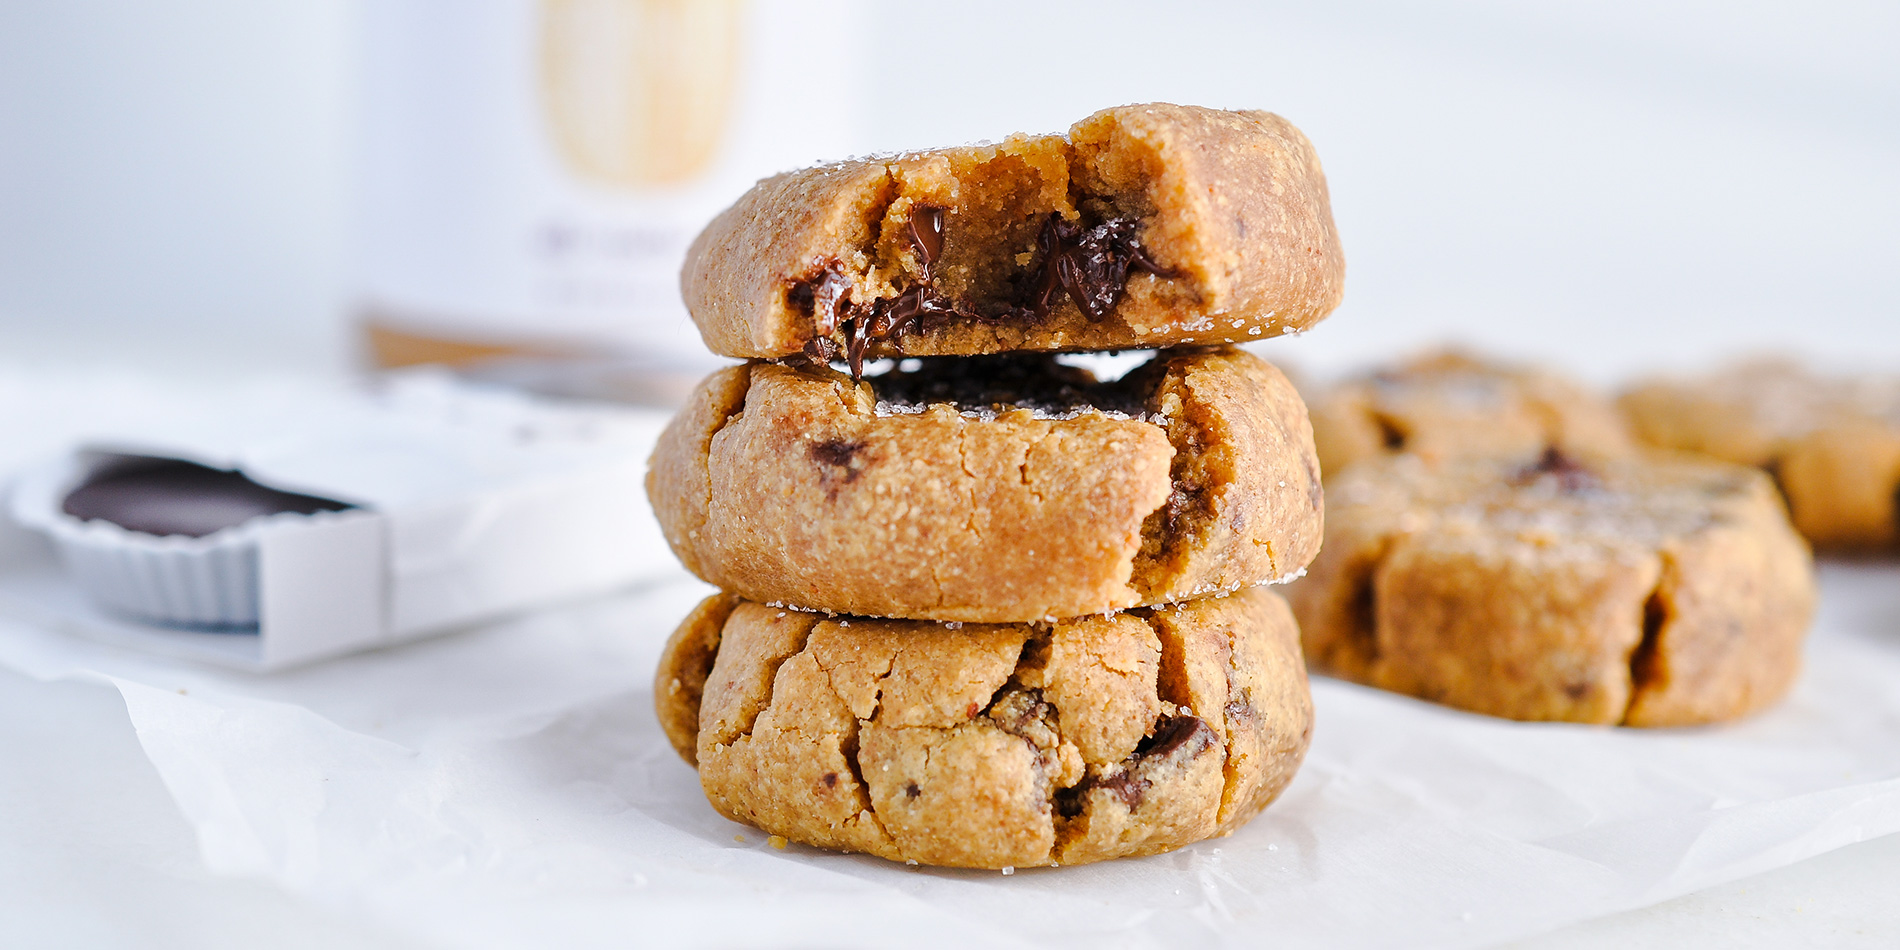 Peanut Butter Cookies stacked with the top one bit revealing the melted chocolate on a white parchment on white background